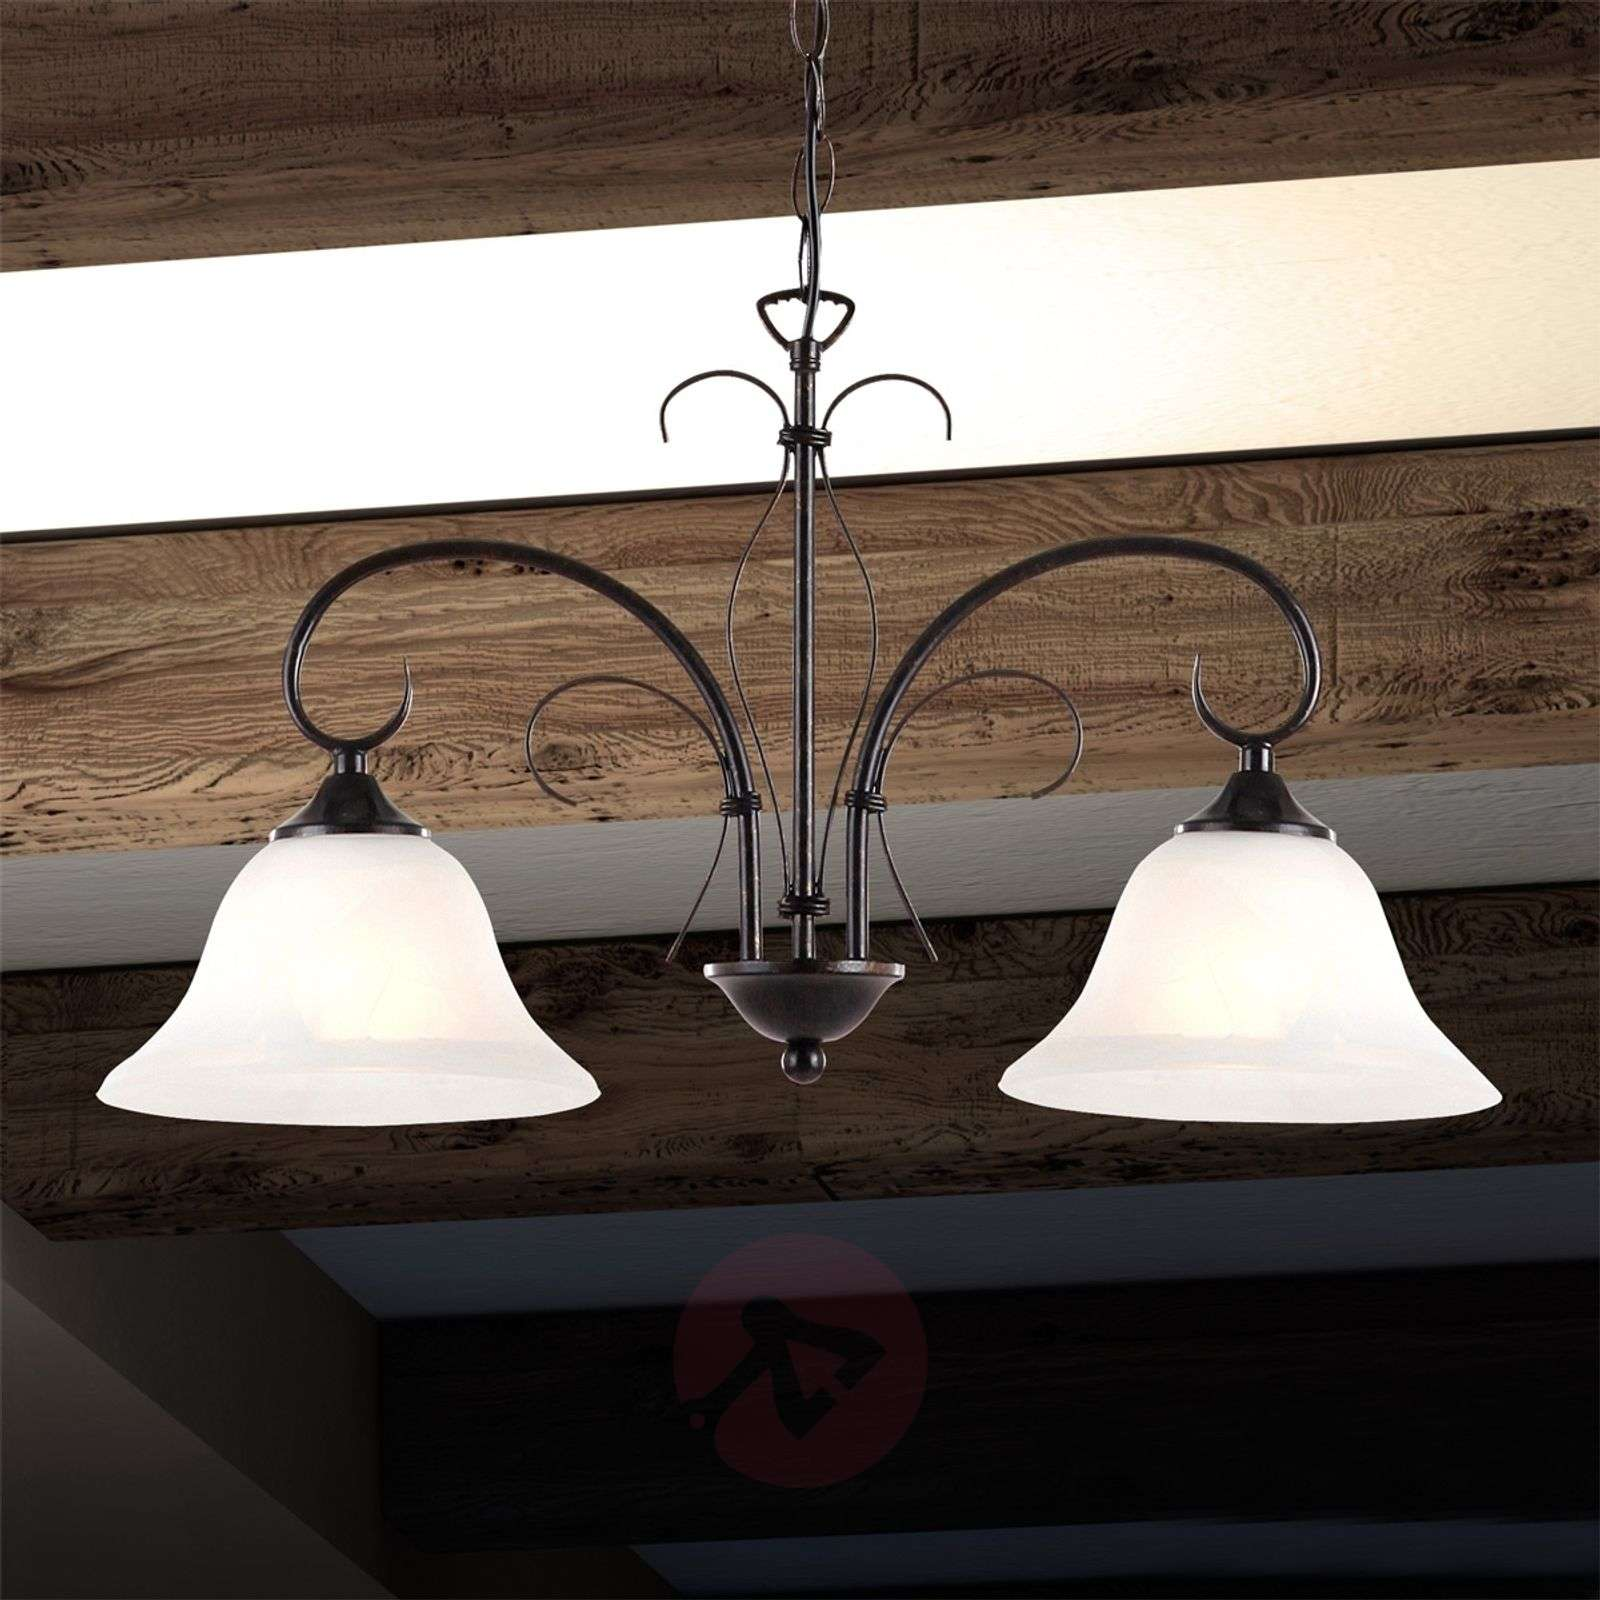 OLAF Antique-looking Pendant Lamp-4014349-01